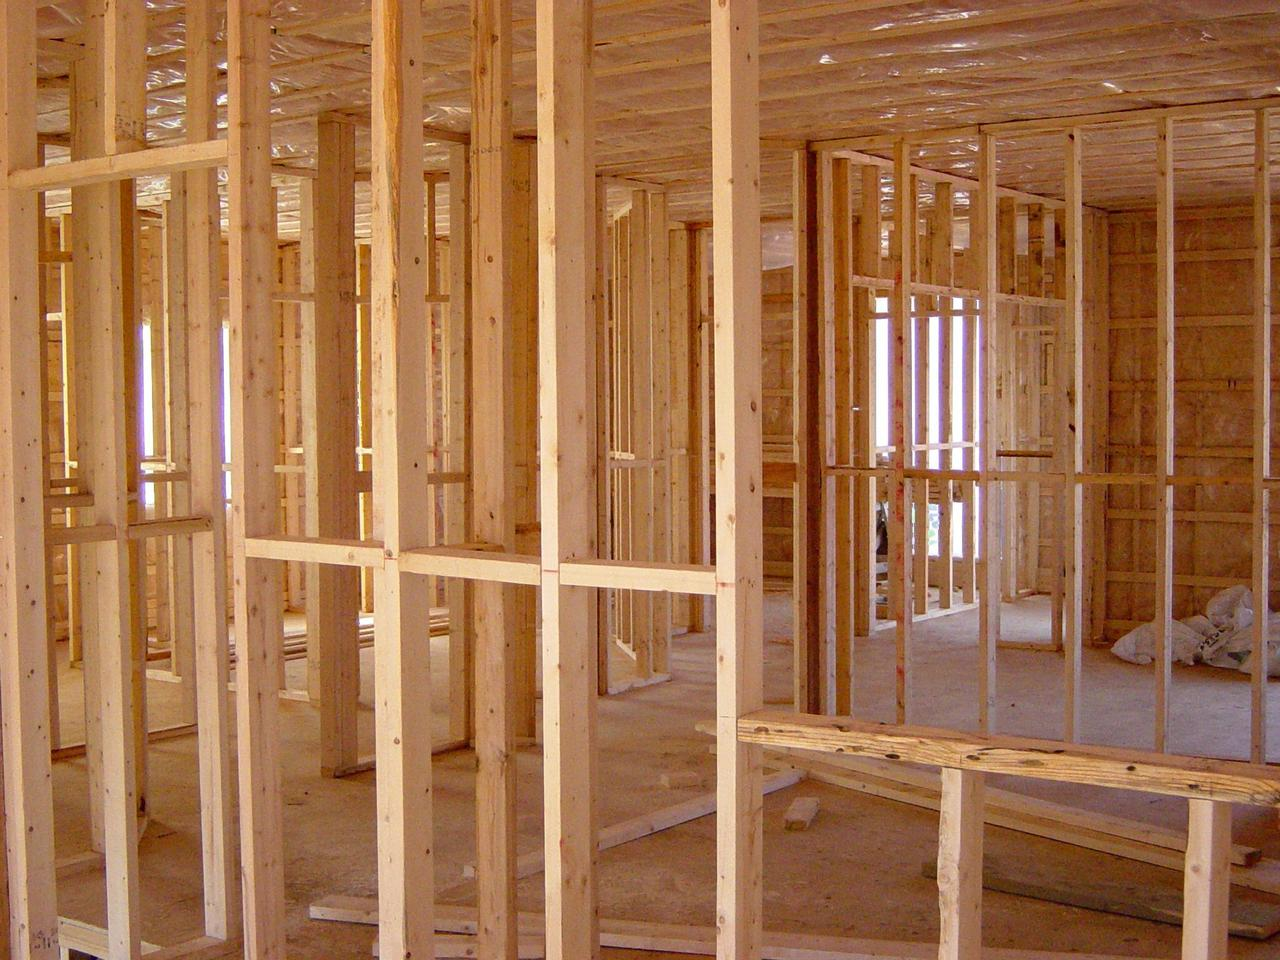 This is a photo of framework renovation and construction work.